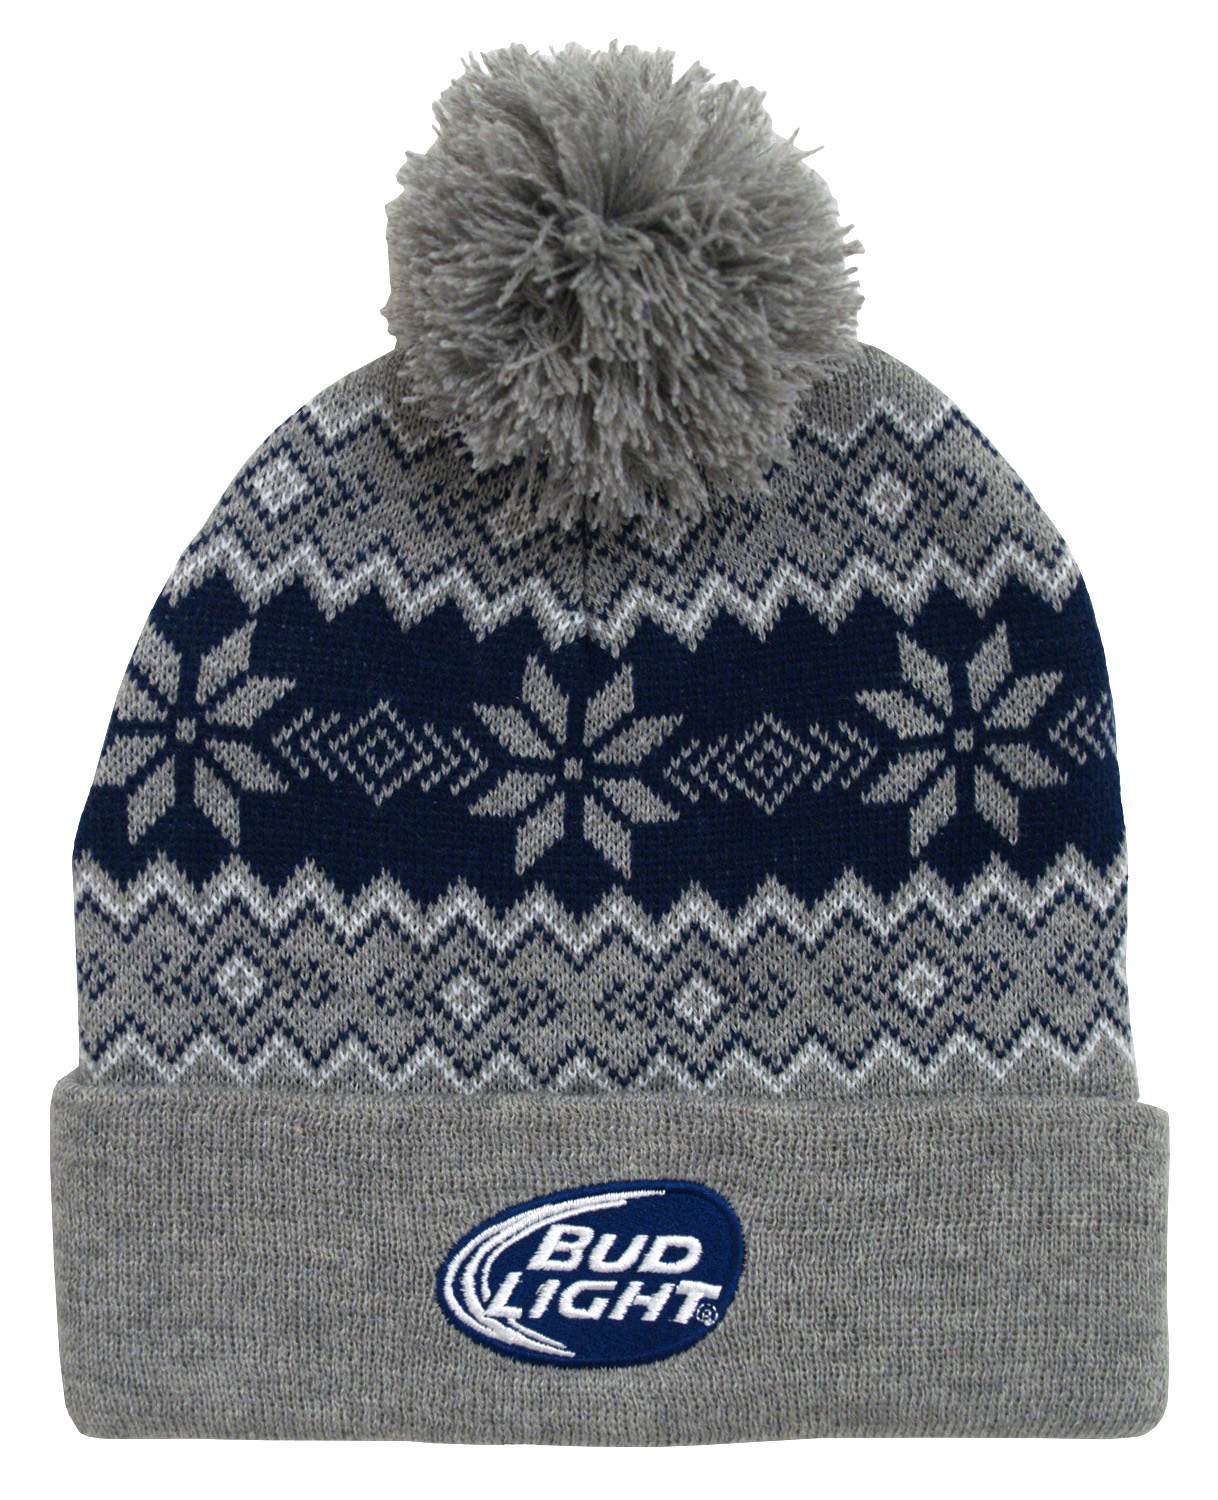 Knitting Hat Headwear for Mens Womens Cold Weather Solid Color Bud-Light-Logo